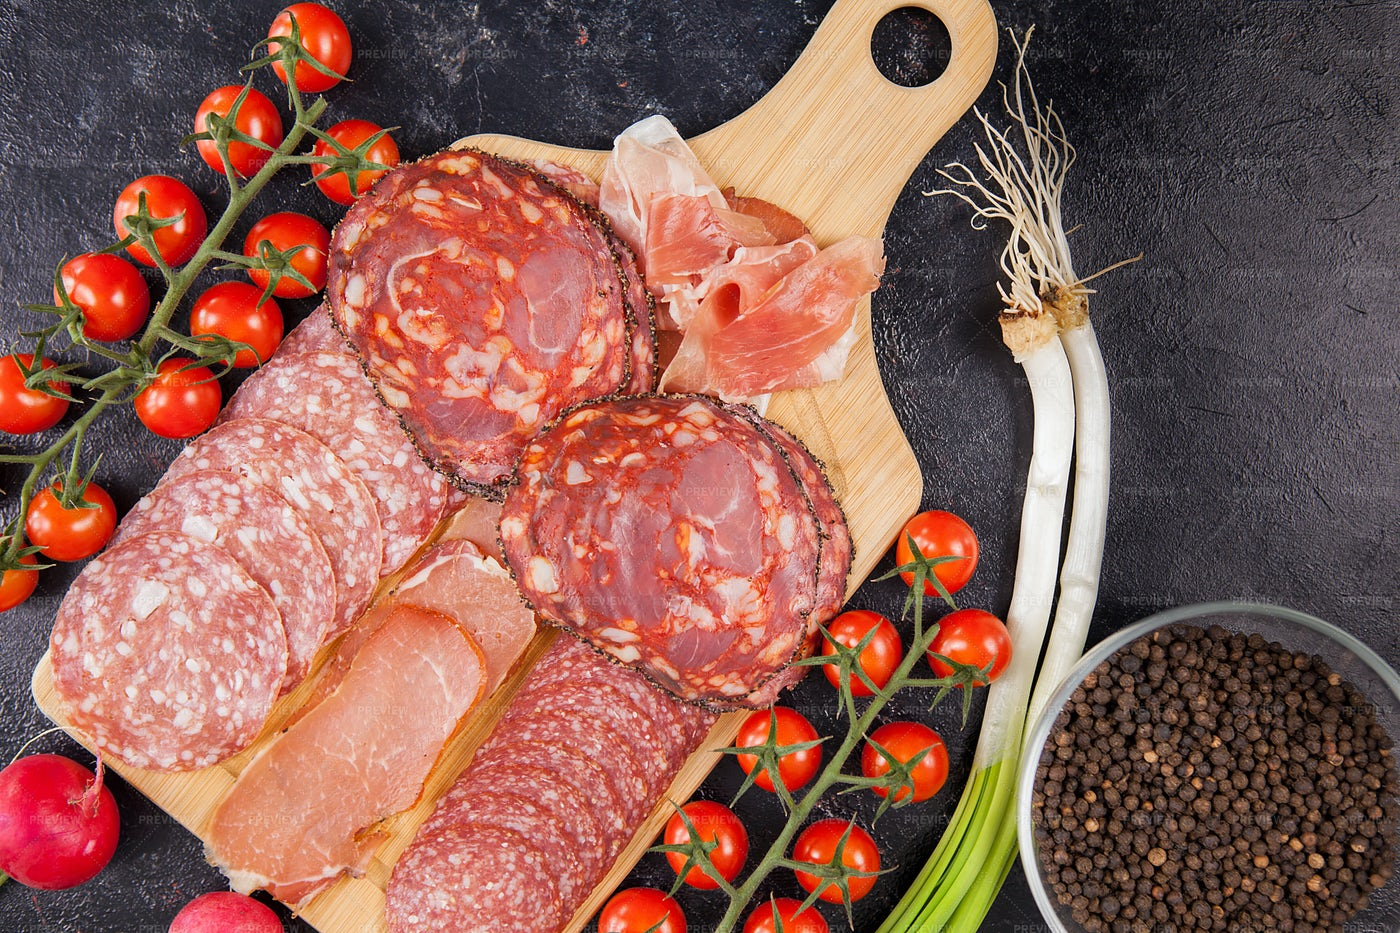 Meat Platter And Tomatoes: Stock Photos